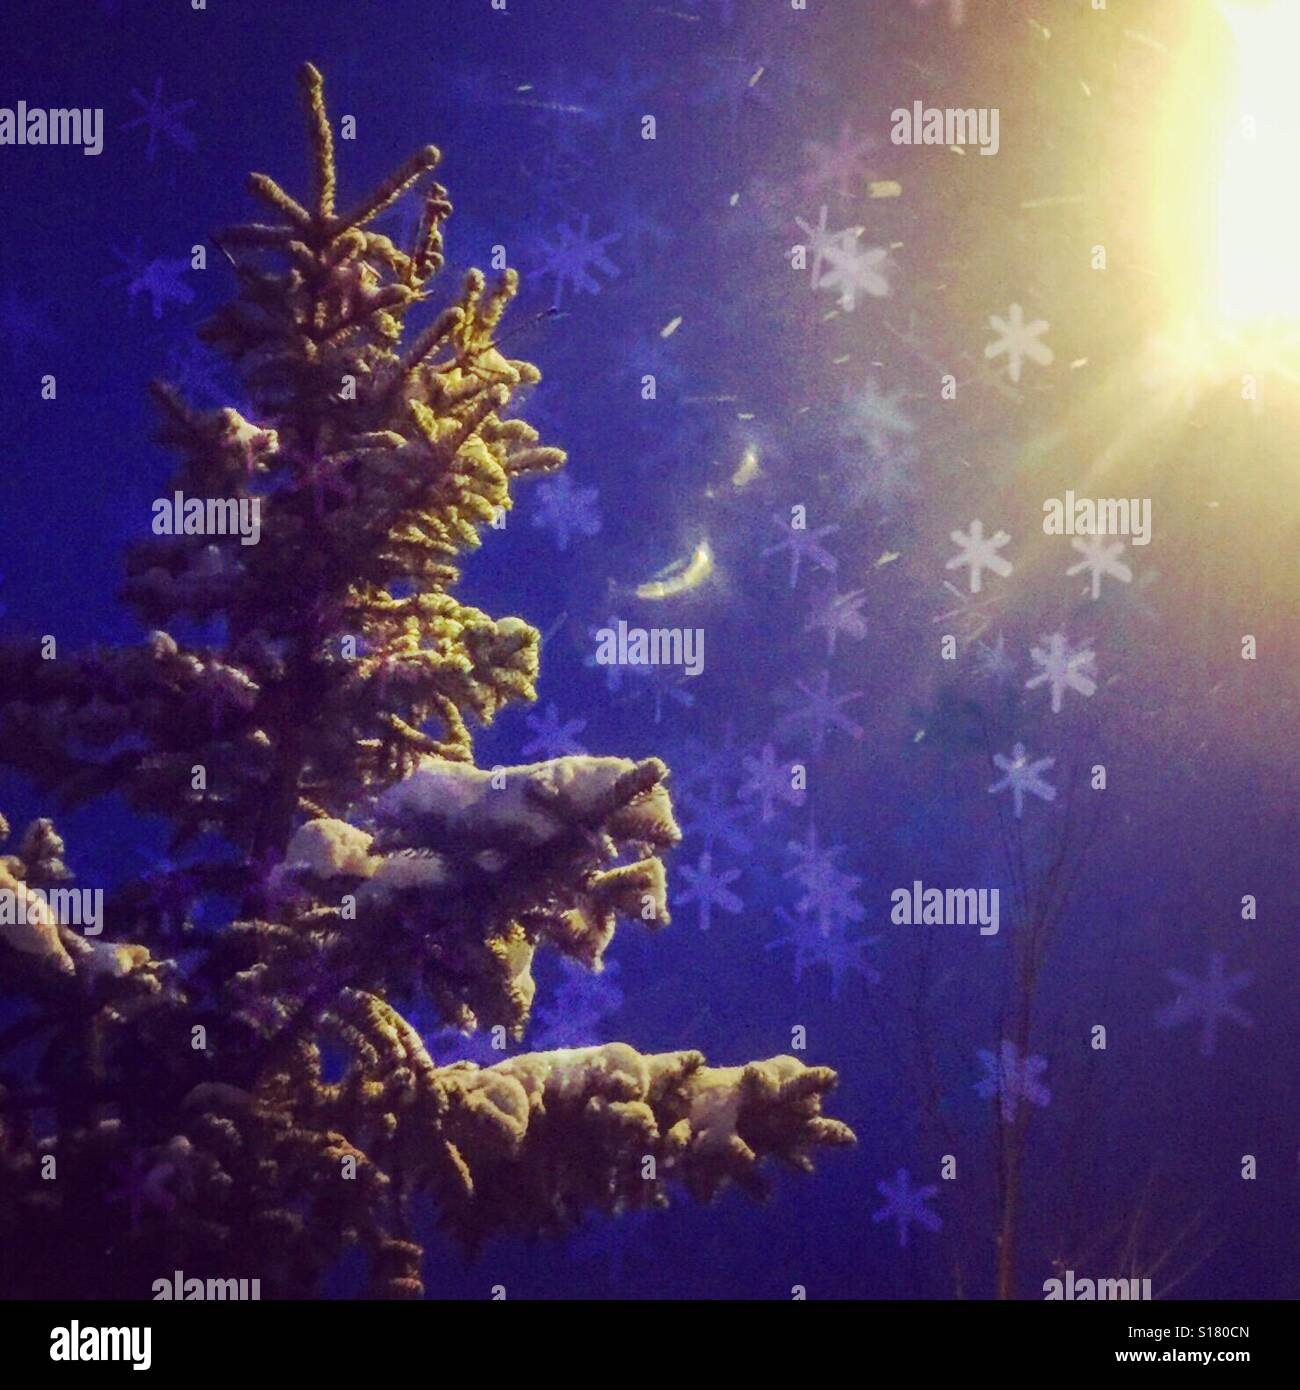 Looking up at an evergreen tree covered in fresh snow and illuminated by a street lights on a snowy night. Edit - Stock Image